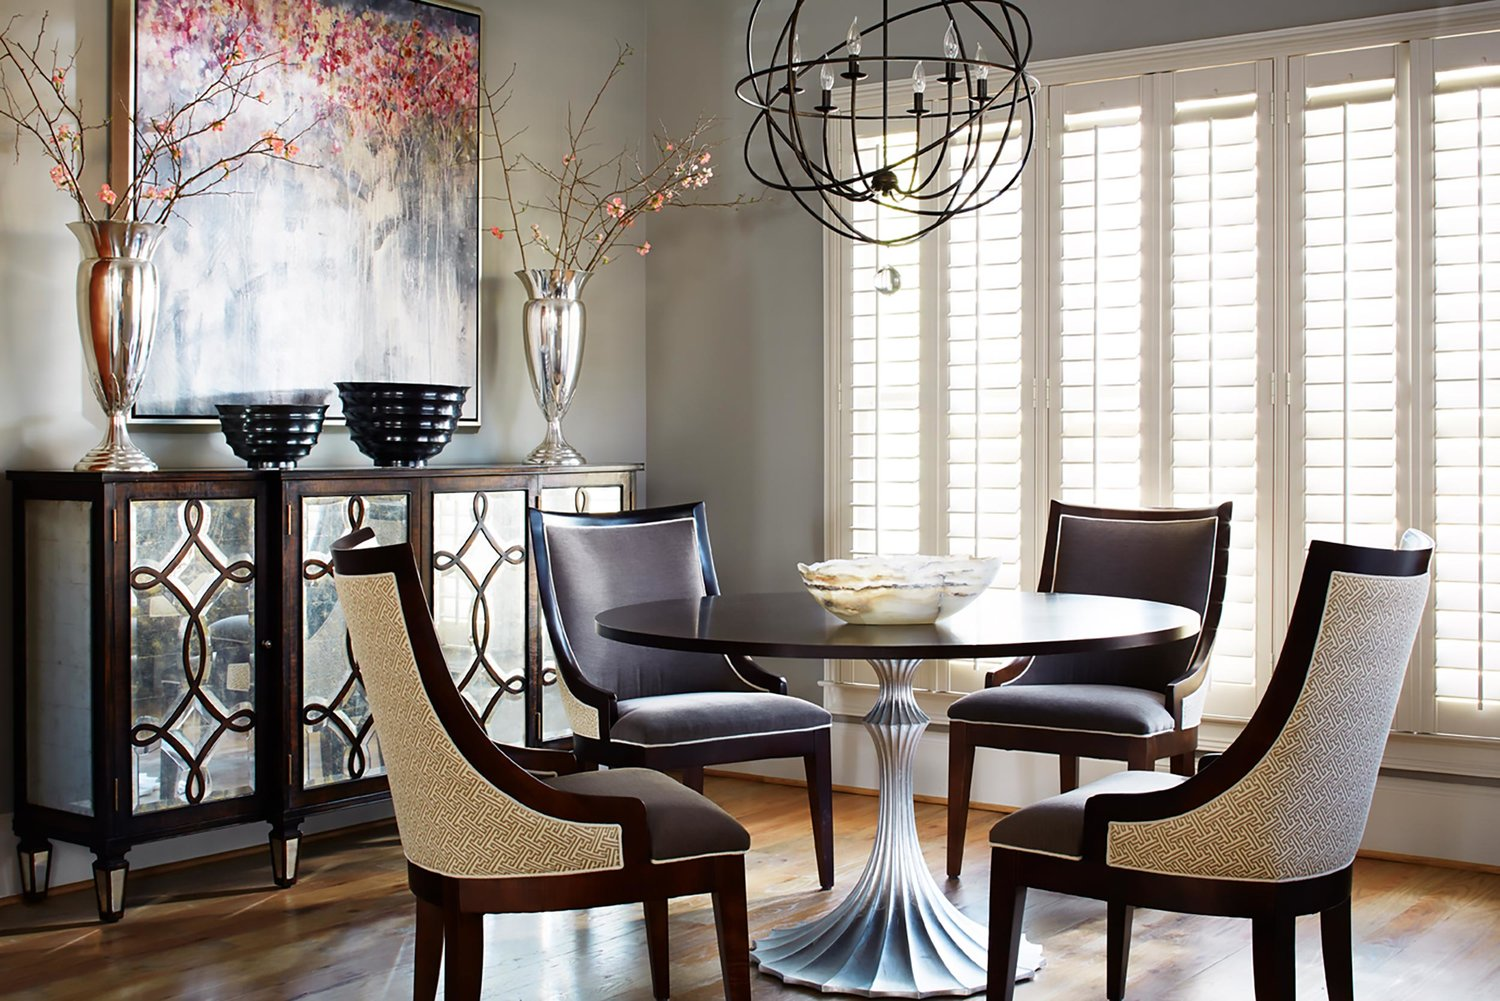 Minhnuyet-Hardy-Interiors-Brookhaven-Beauty-Dine-Dining-Room-Table.jpg